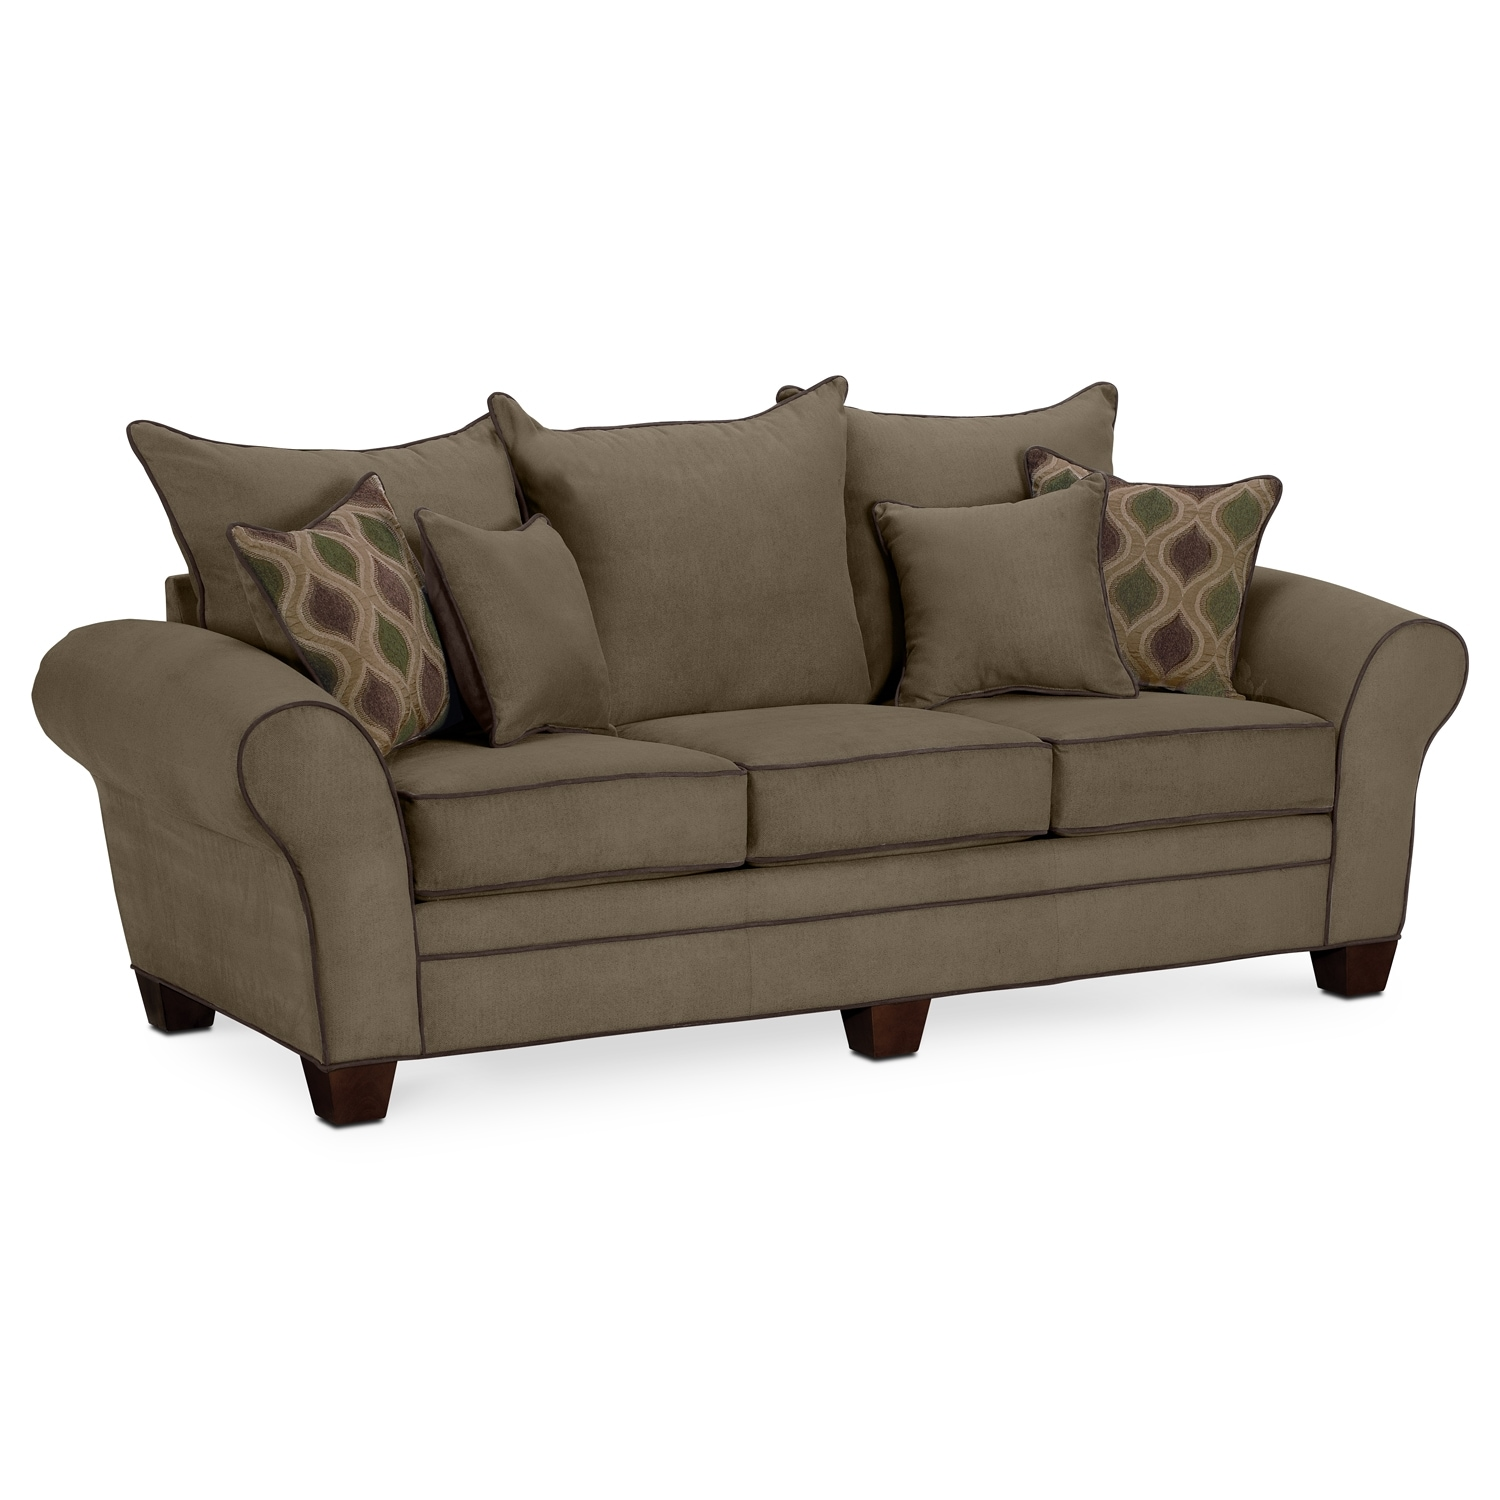 Rendezvous sofa value city furniture Sofa loveseat